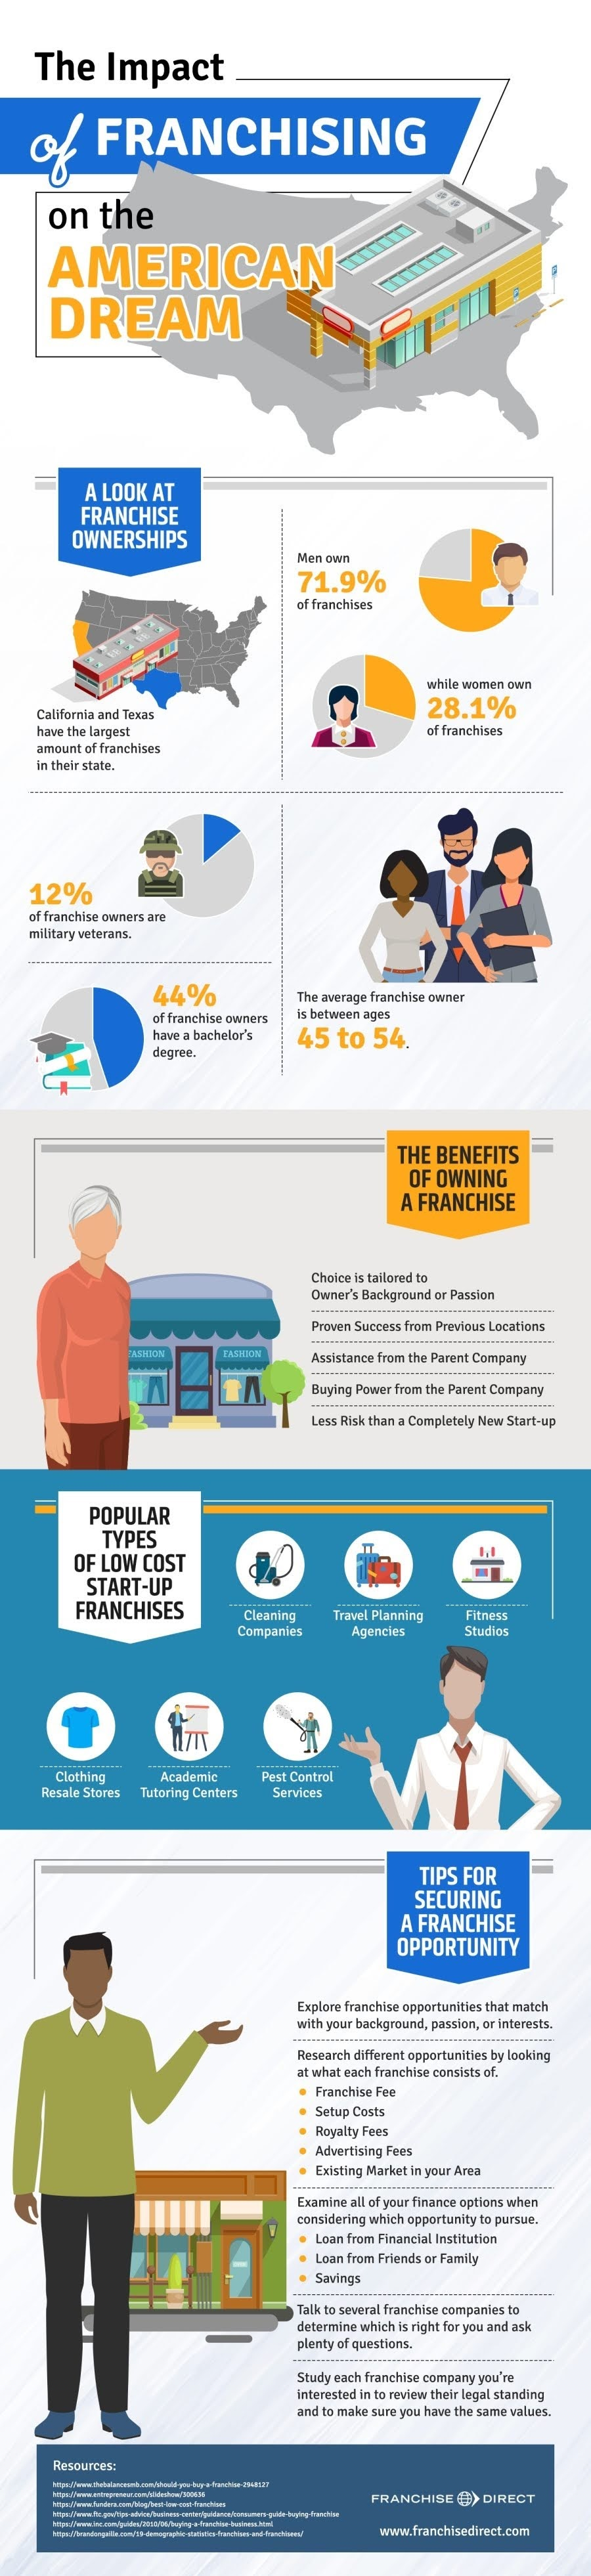 The Impact of Franchising on the American Dream #infographic